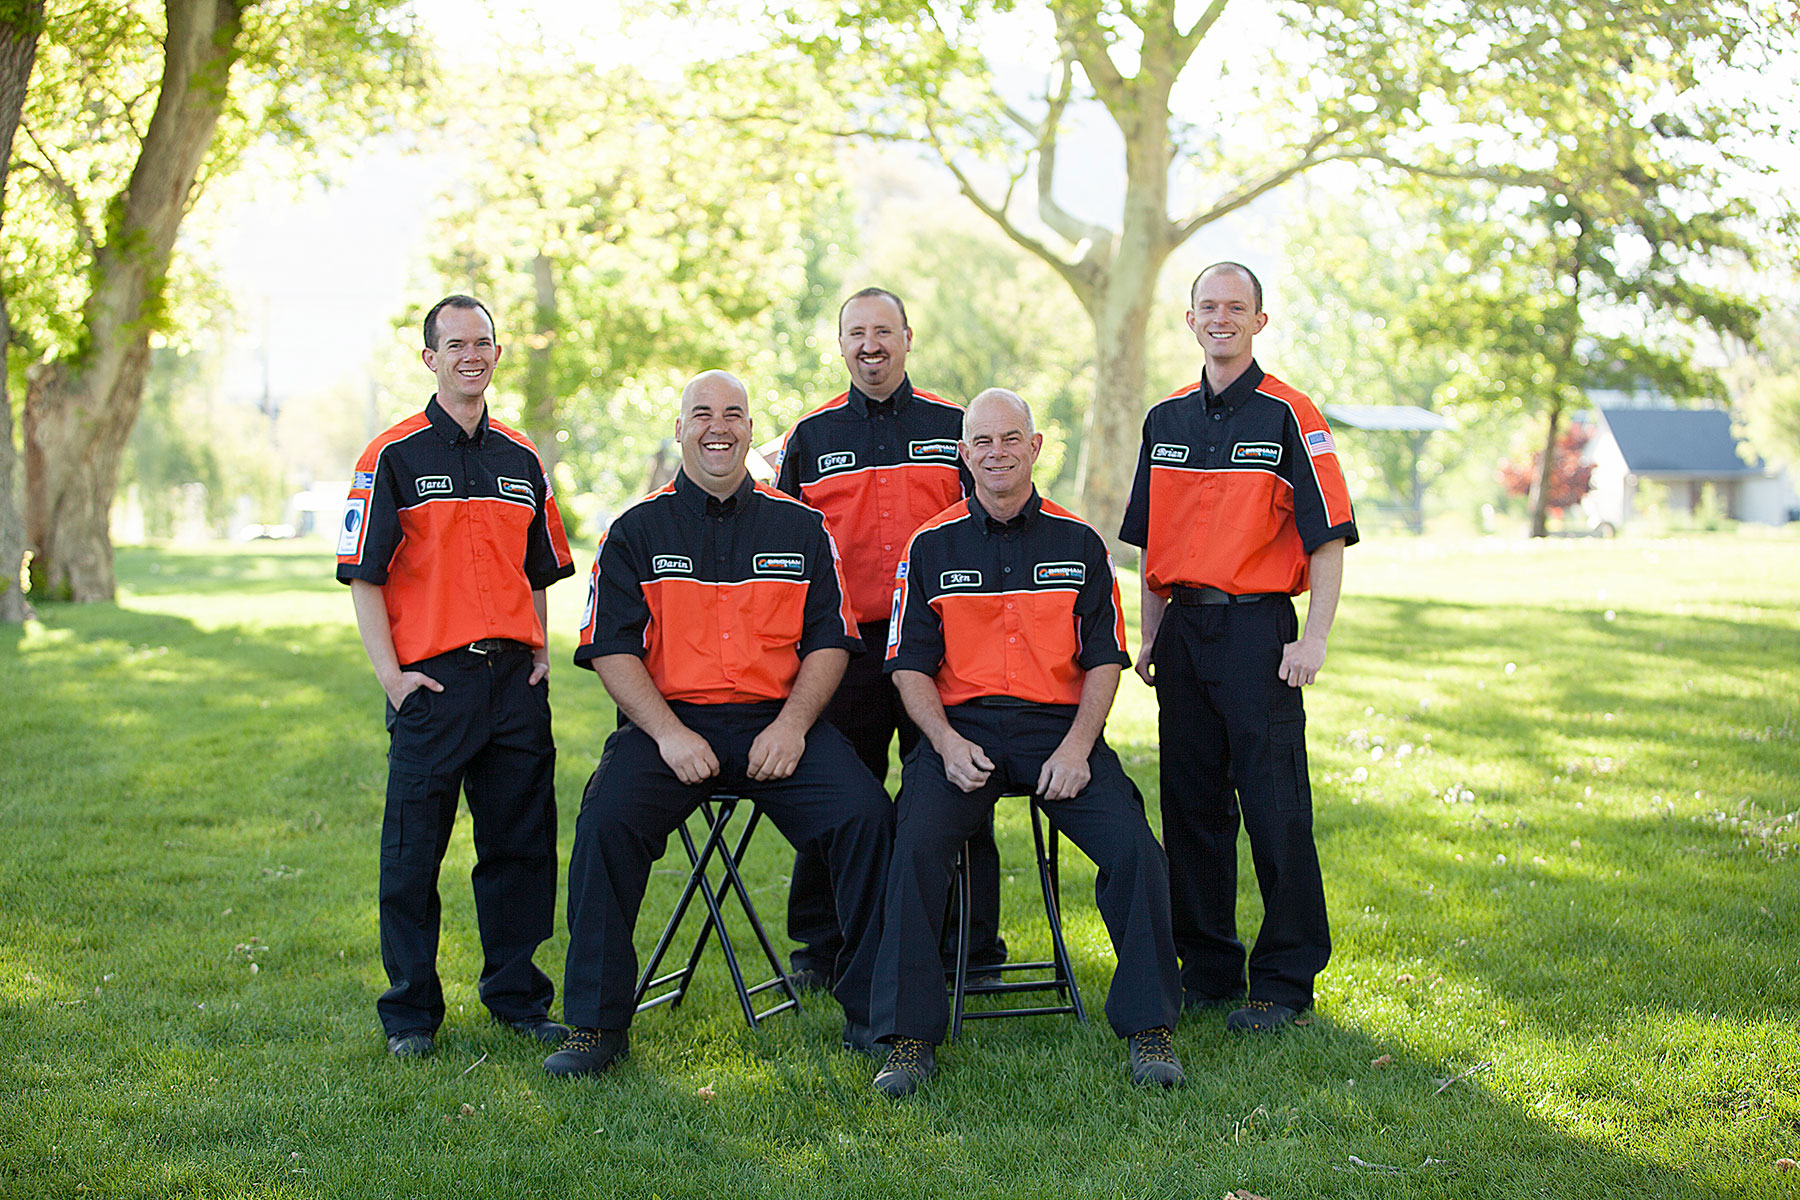 brigham-heating-and-cooling-our-team